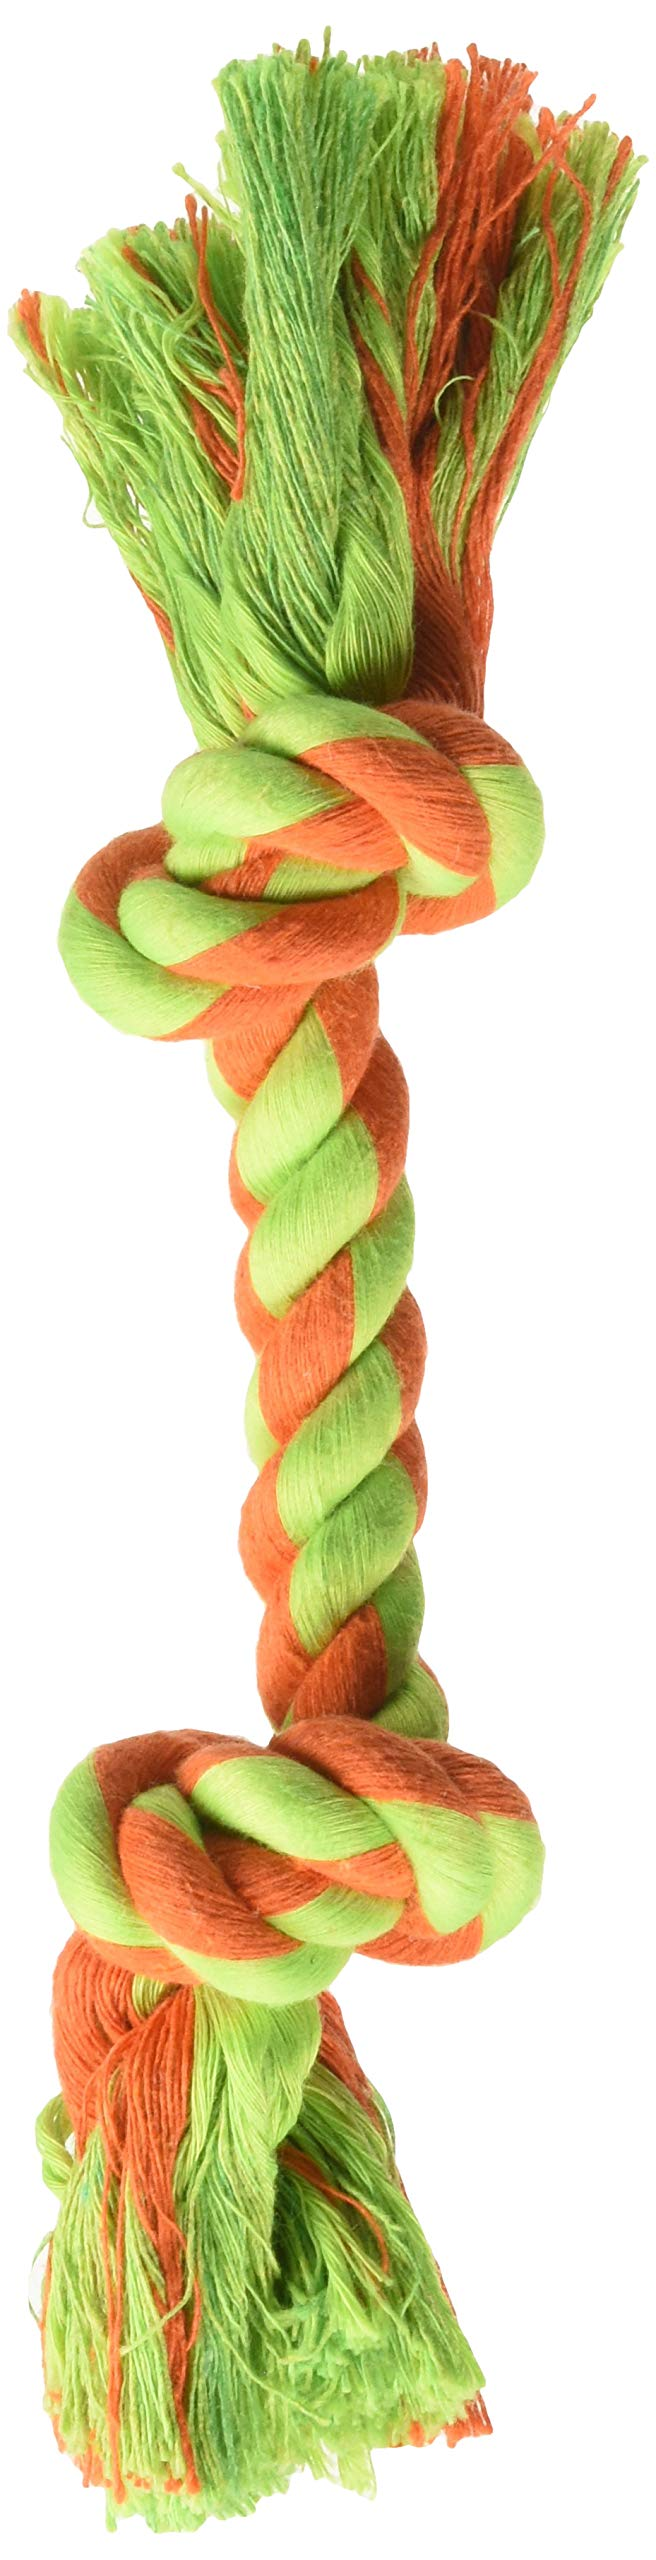 Amazon price history for Active Cotton Knotted Rope Dog Toy Small, 100 G